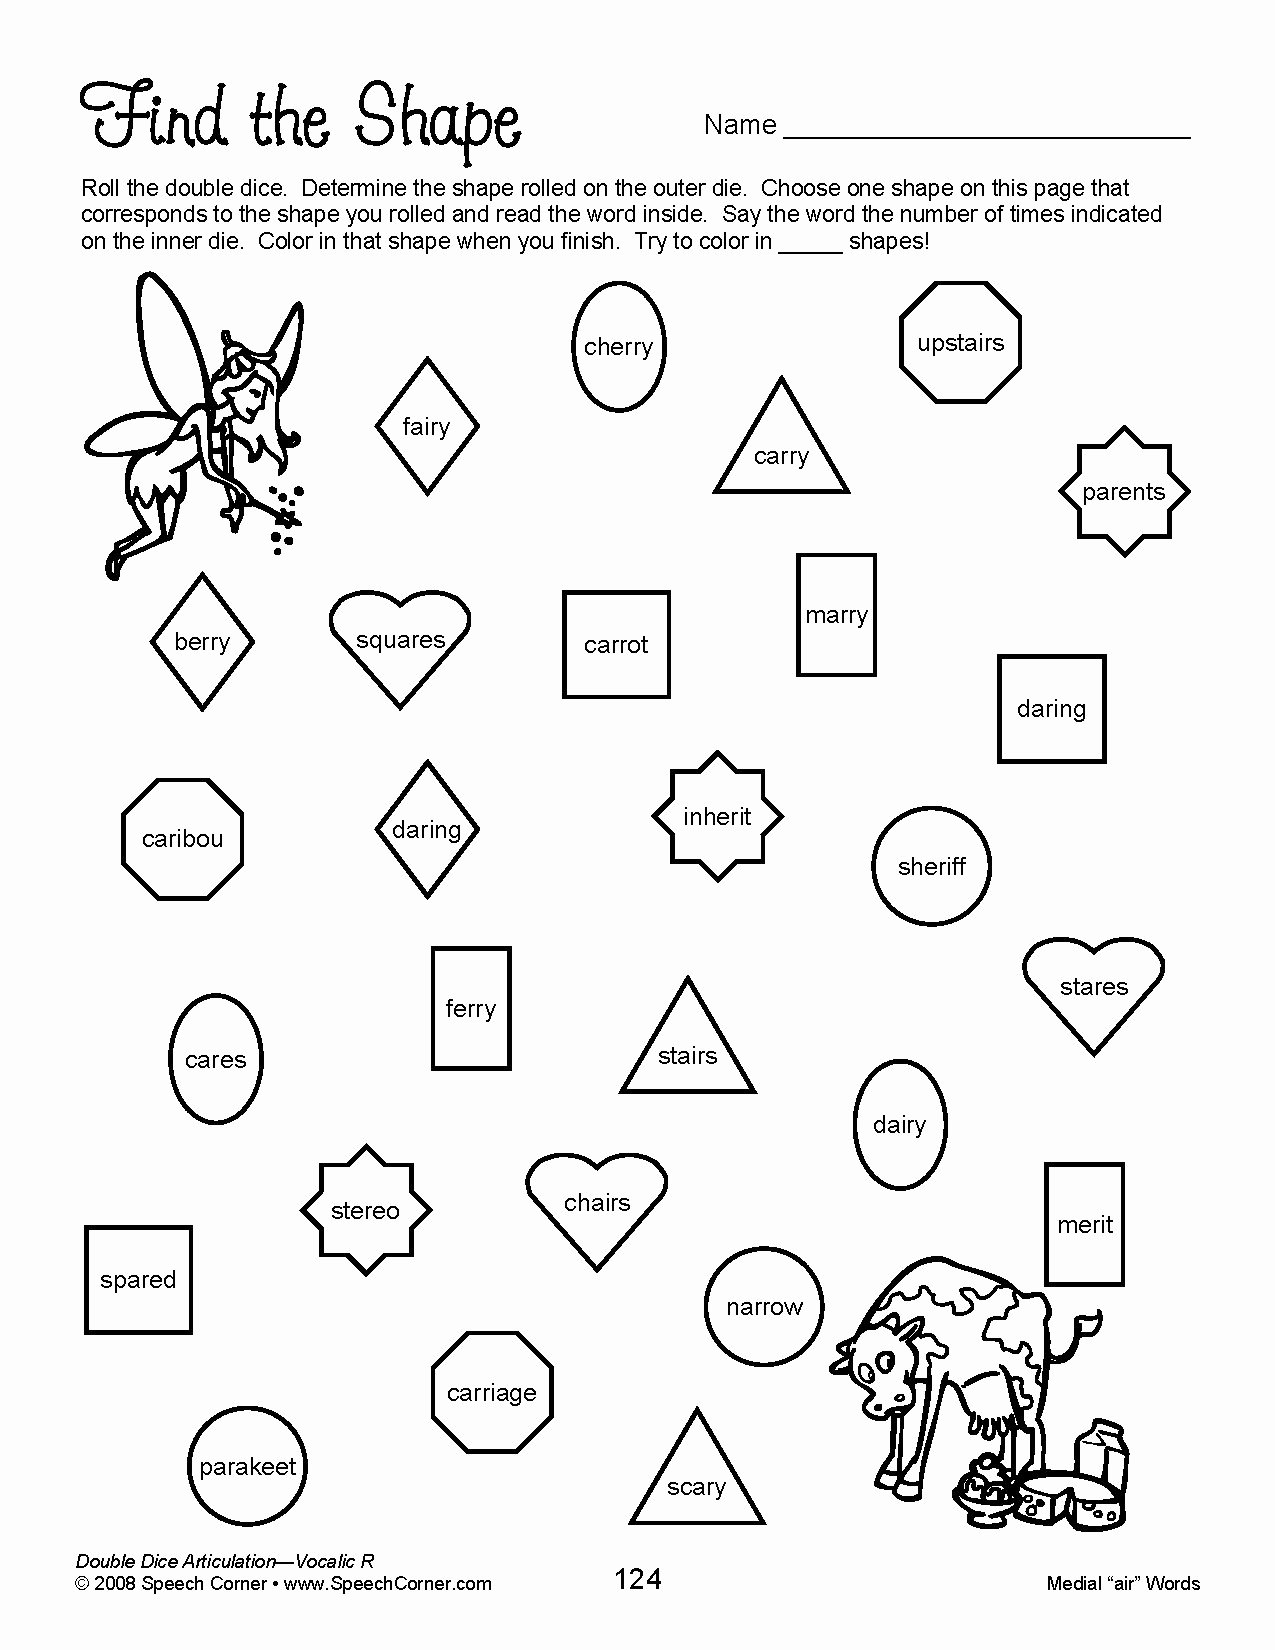 Speech therapy Worksheets for Preschoolers Free Speech Corner Double Dice Articulation Vocalic Educational